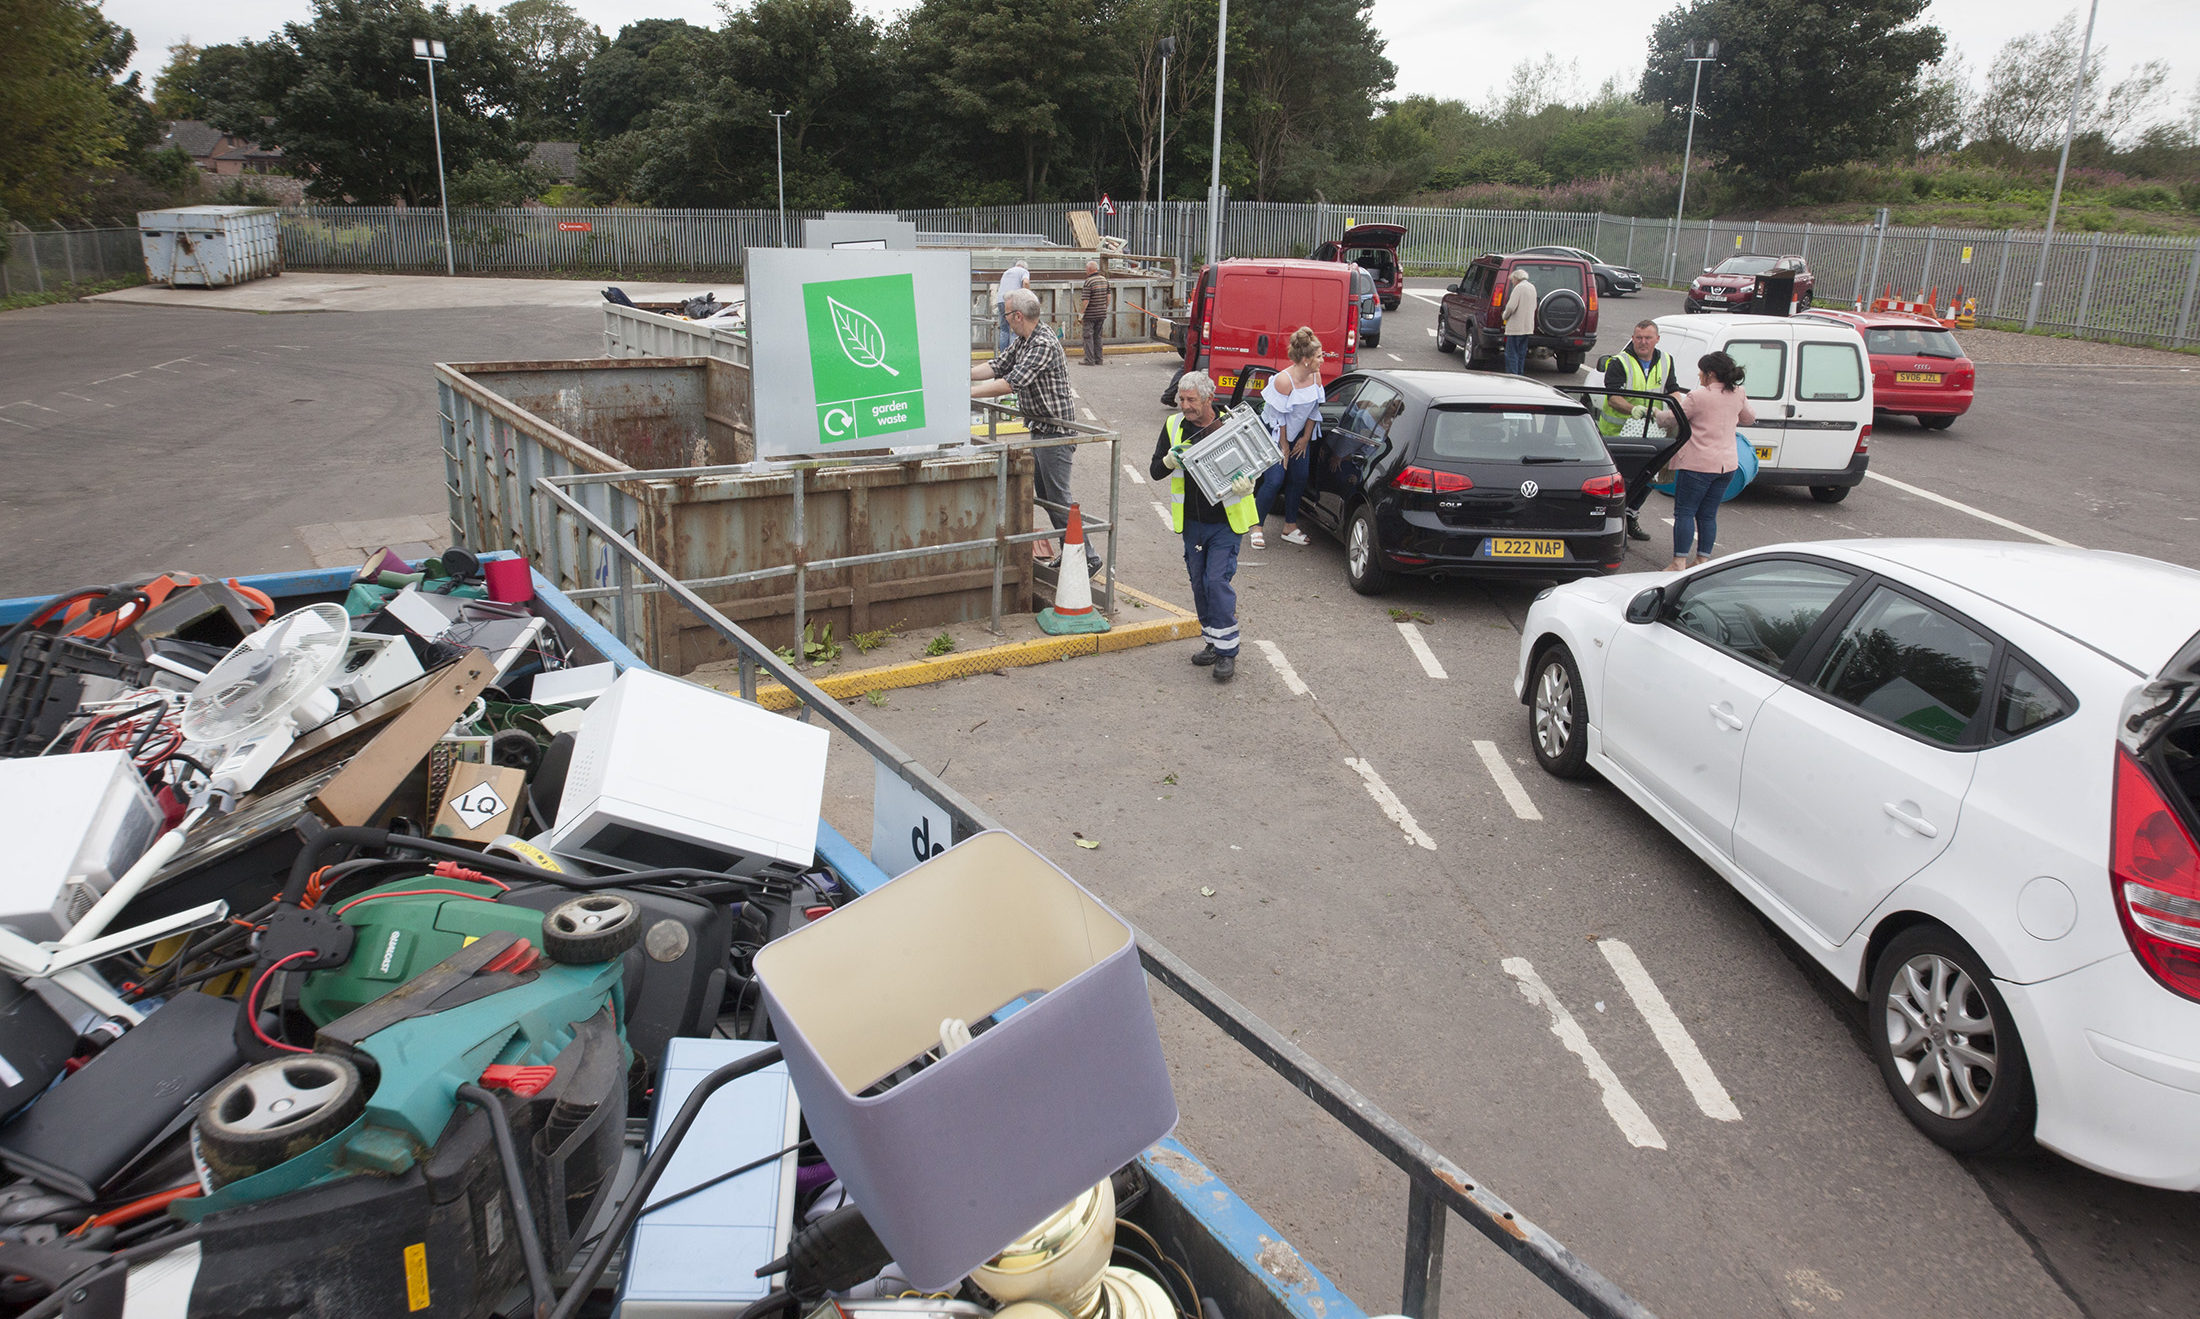 Arbroath Recycling Centre.